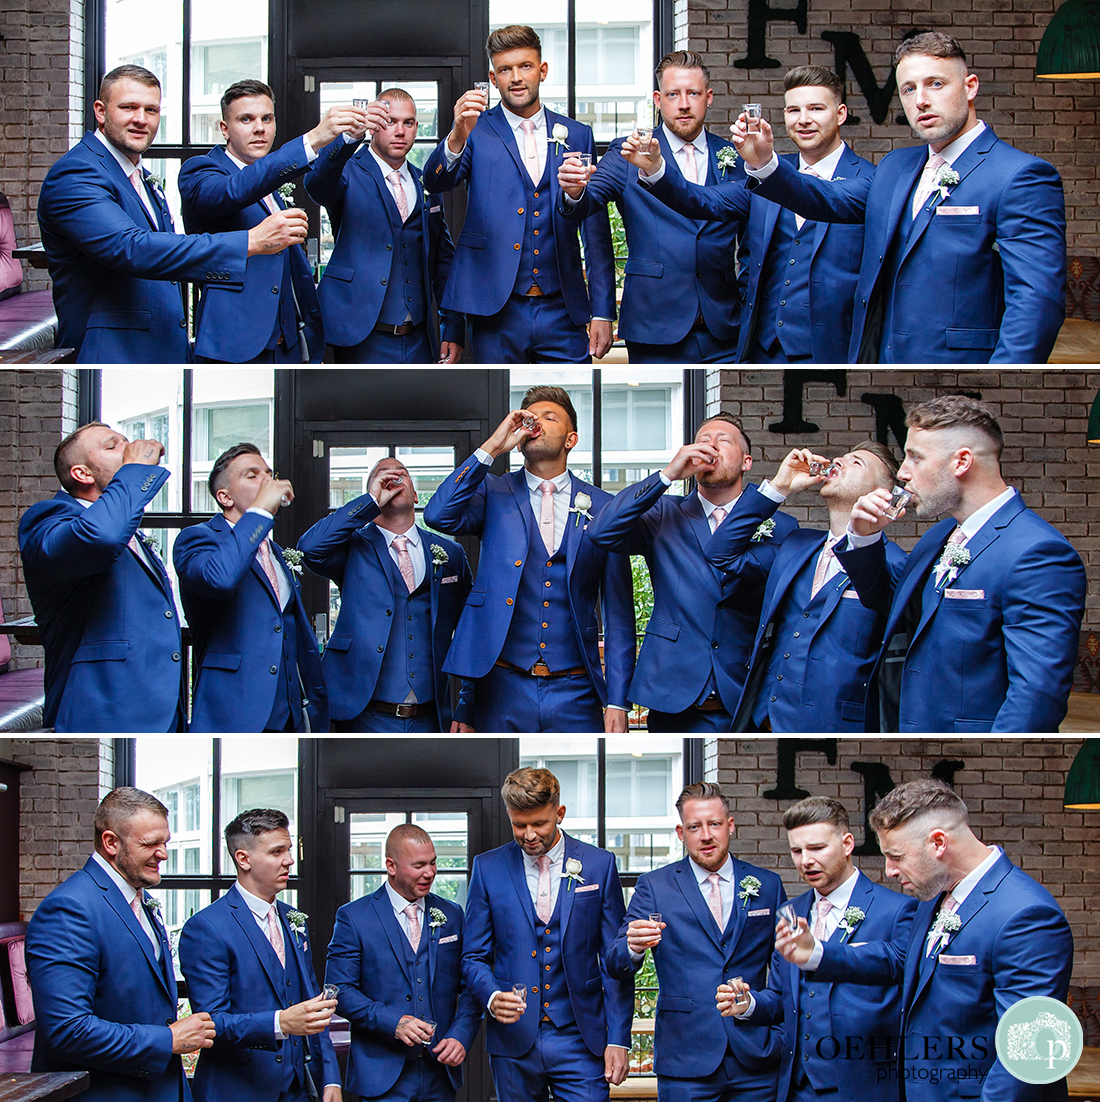 Osmaston Park wedding photography - One for the road. Down in one. Classic expressions on groomsmen faces.